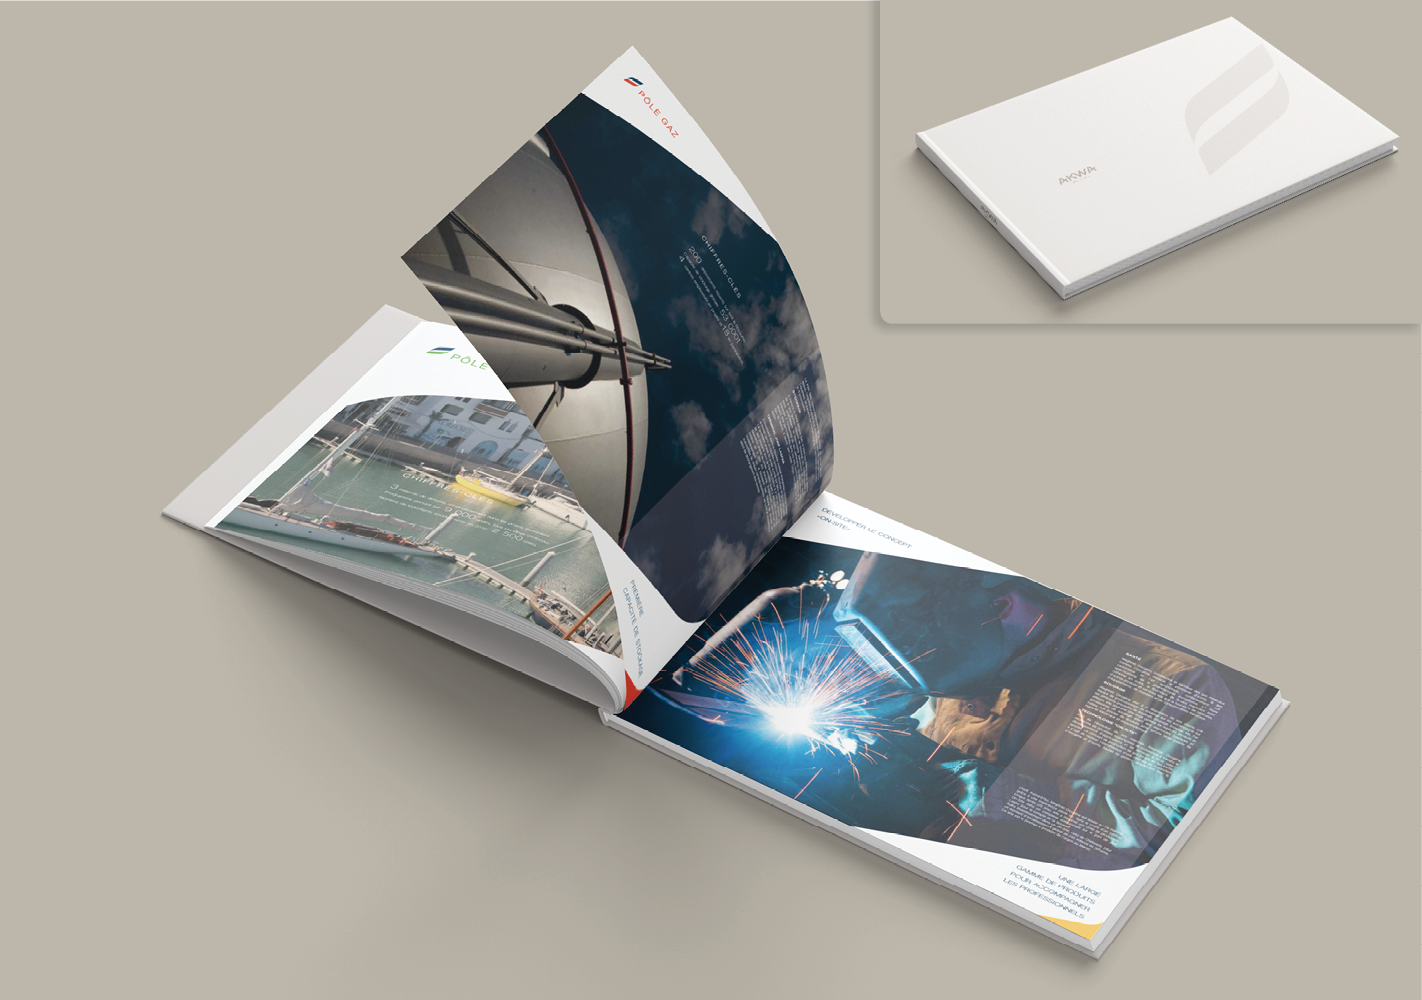 #Brochure institutionnelle : Adaptation, exécution et impression #Institutional brochure : Adaptation, execution and printing